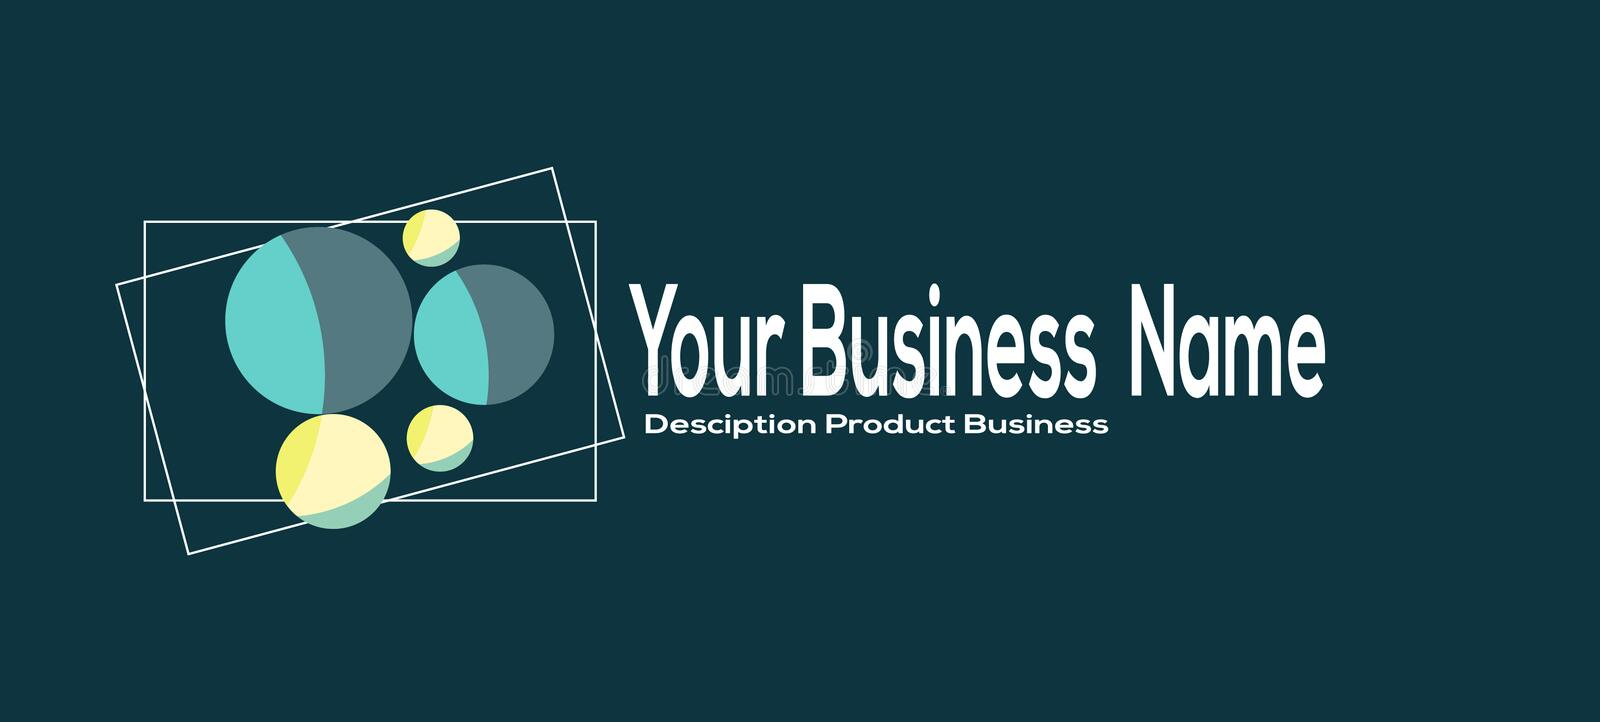 Design Modern Simple Business Logo. Place For Your Name Business, Text vector illustration